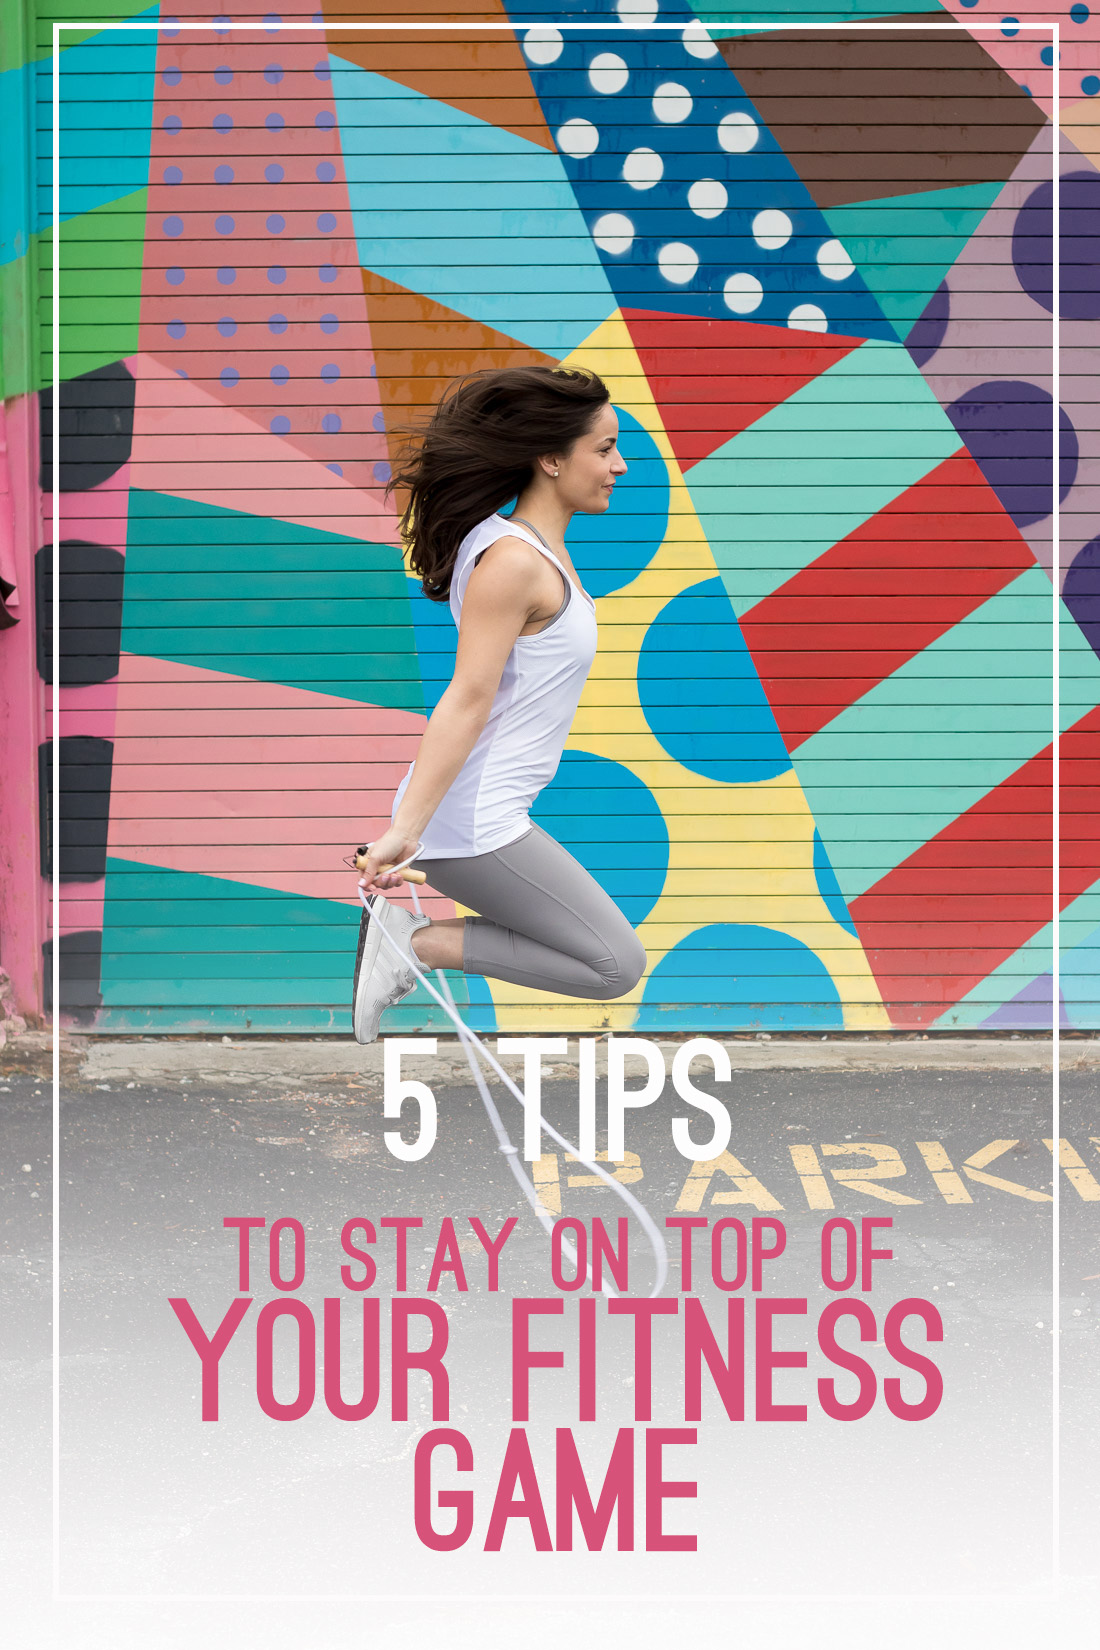 Five Tips To Stay On Top Of Your Fitness Game